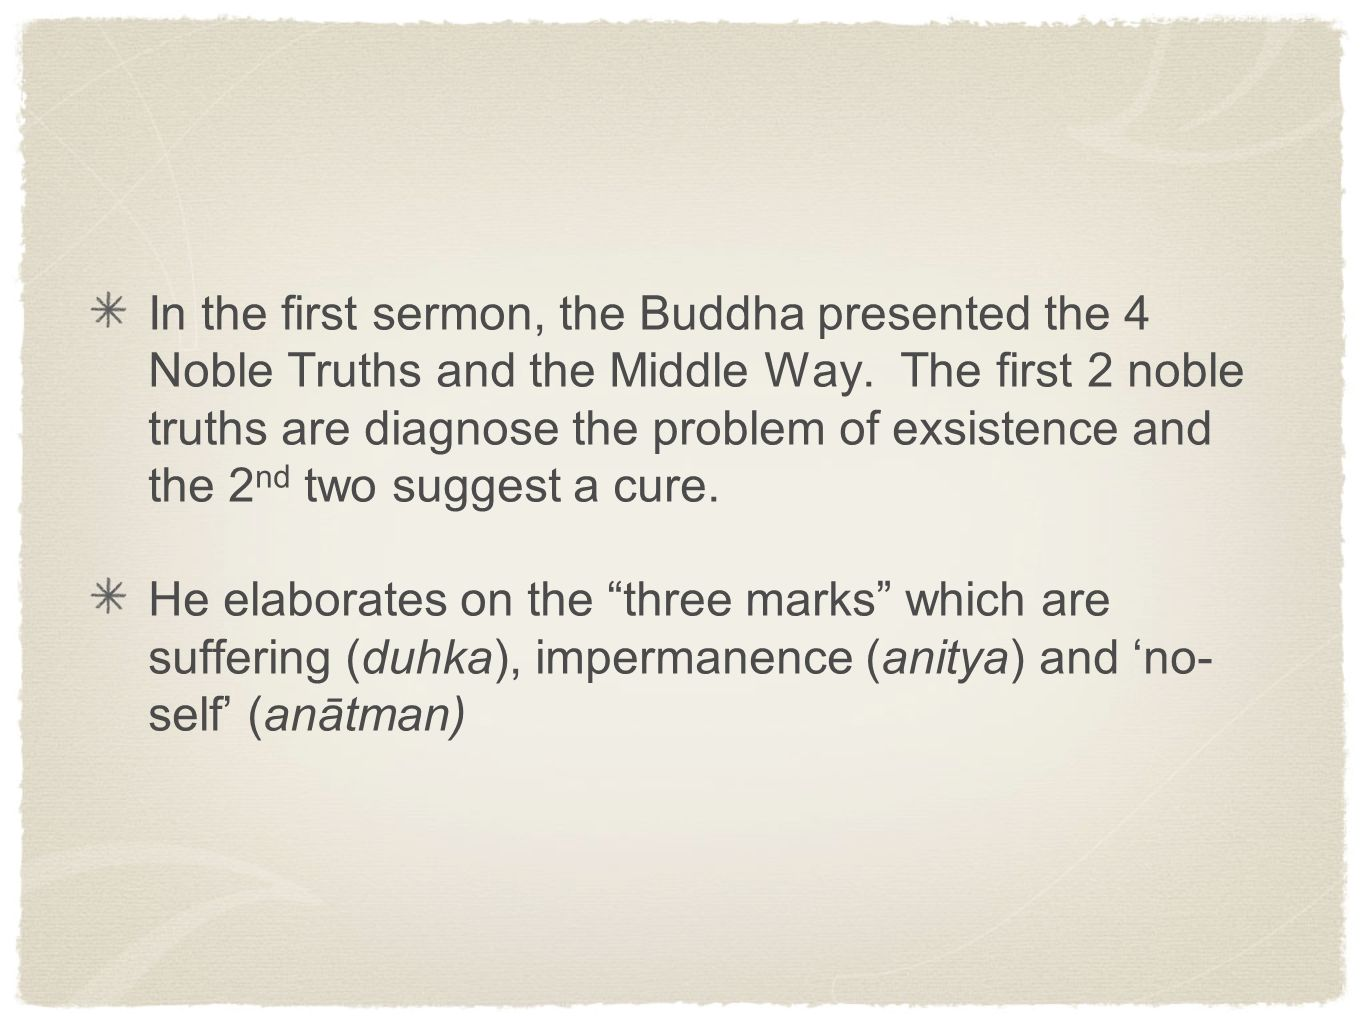 In the first sermon, the Buddha presented the 4 Noble Truths and the Middle Way. The first 2 noble truths are diagnose the problem of exsistence and the 2nd two suggest a cure.